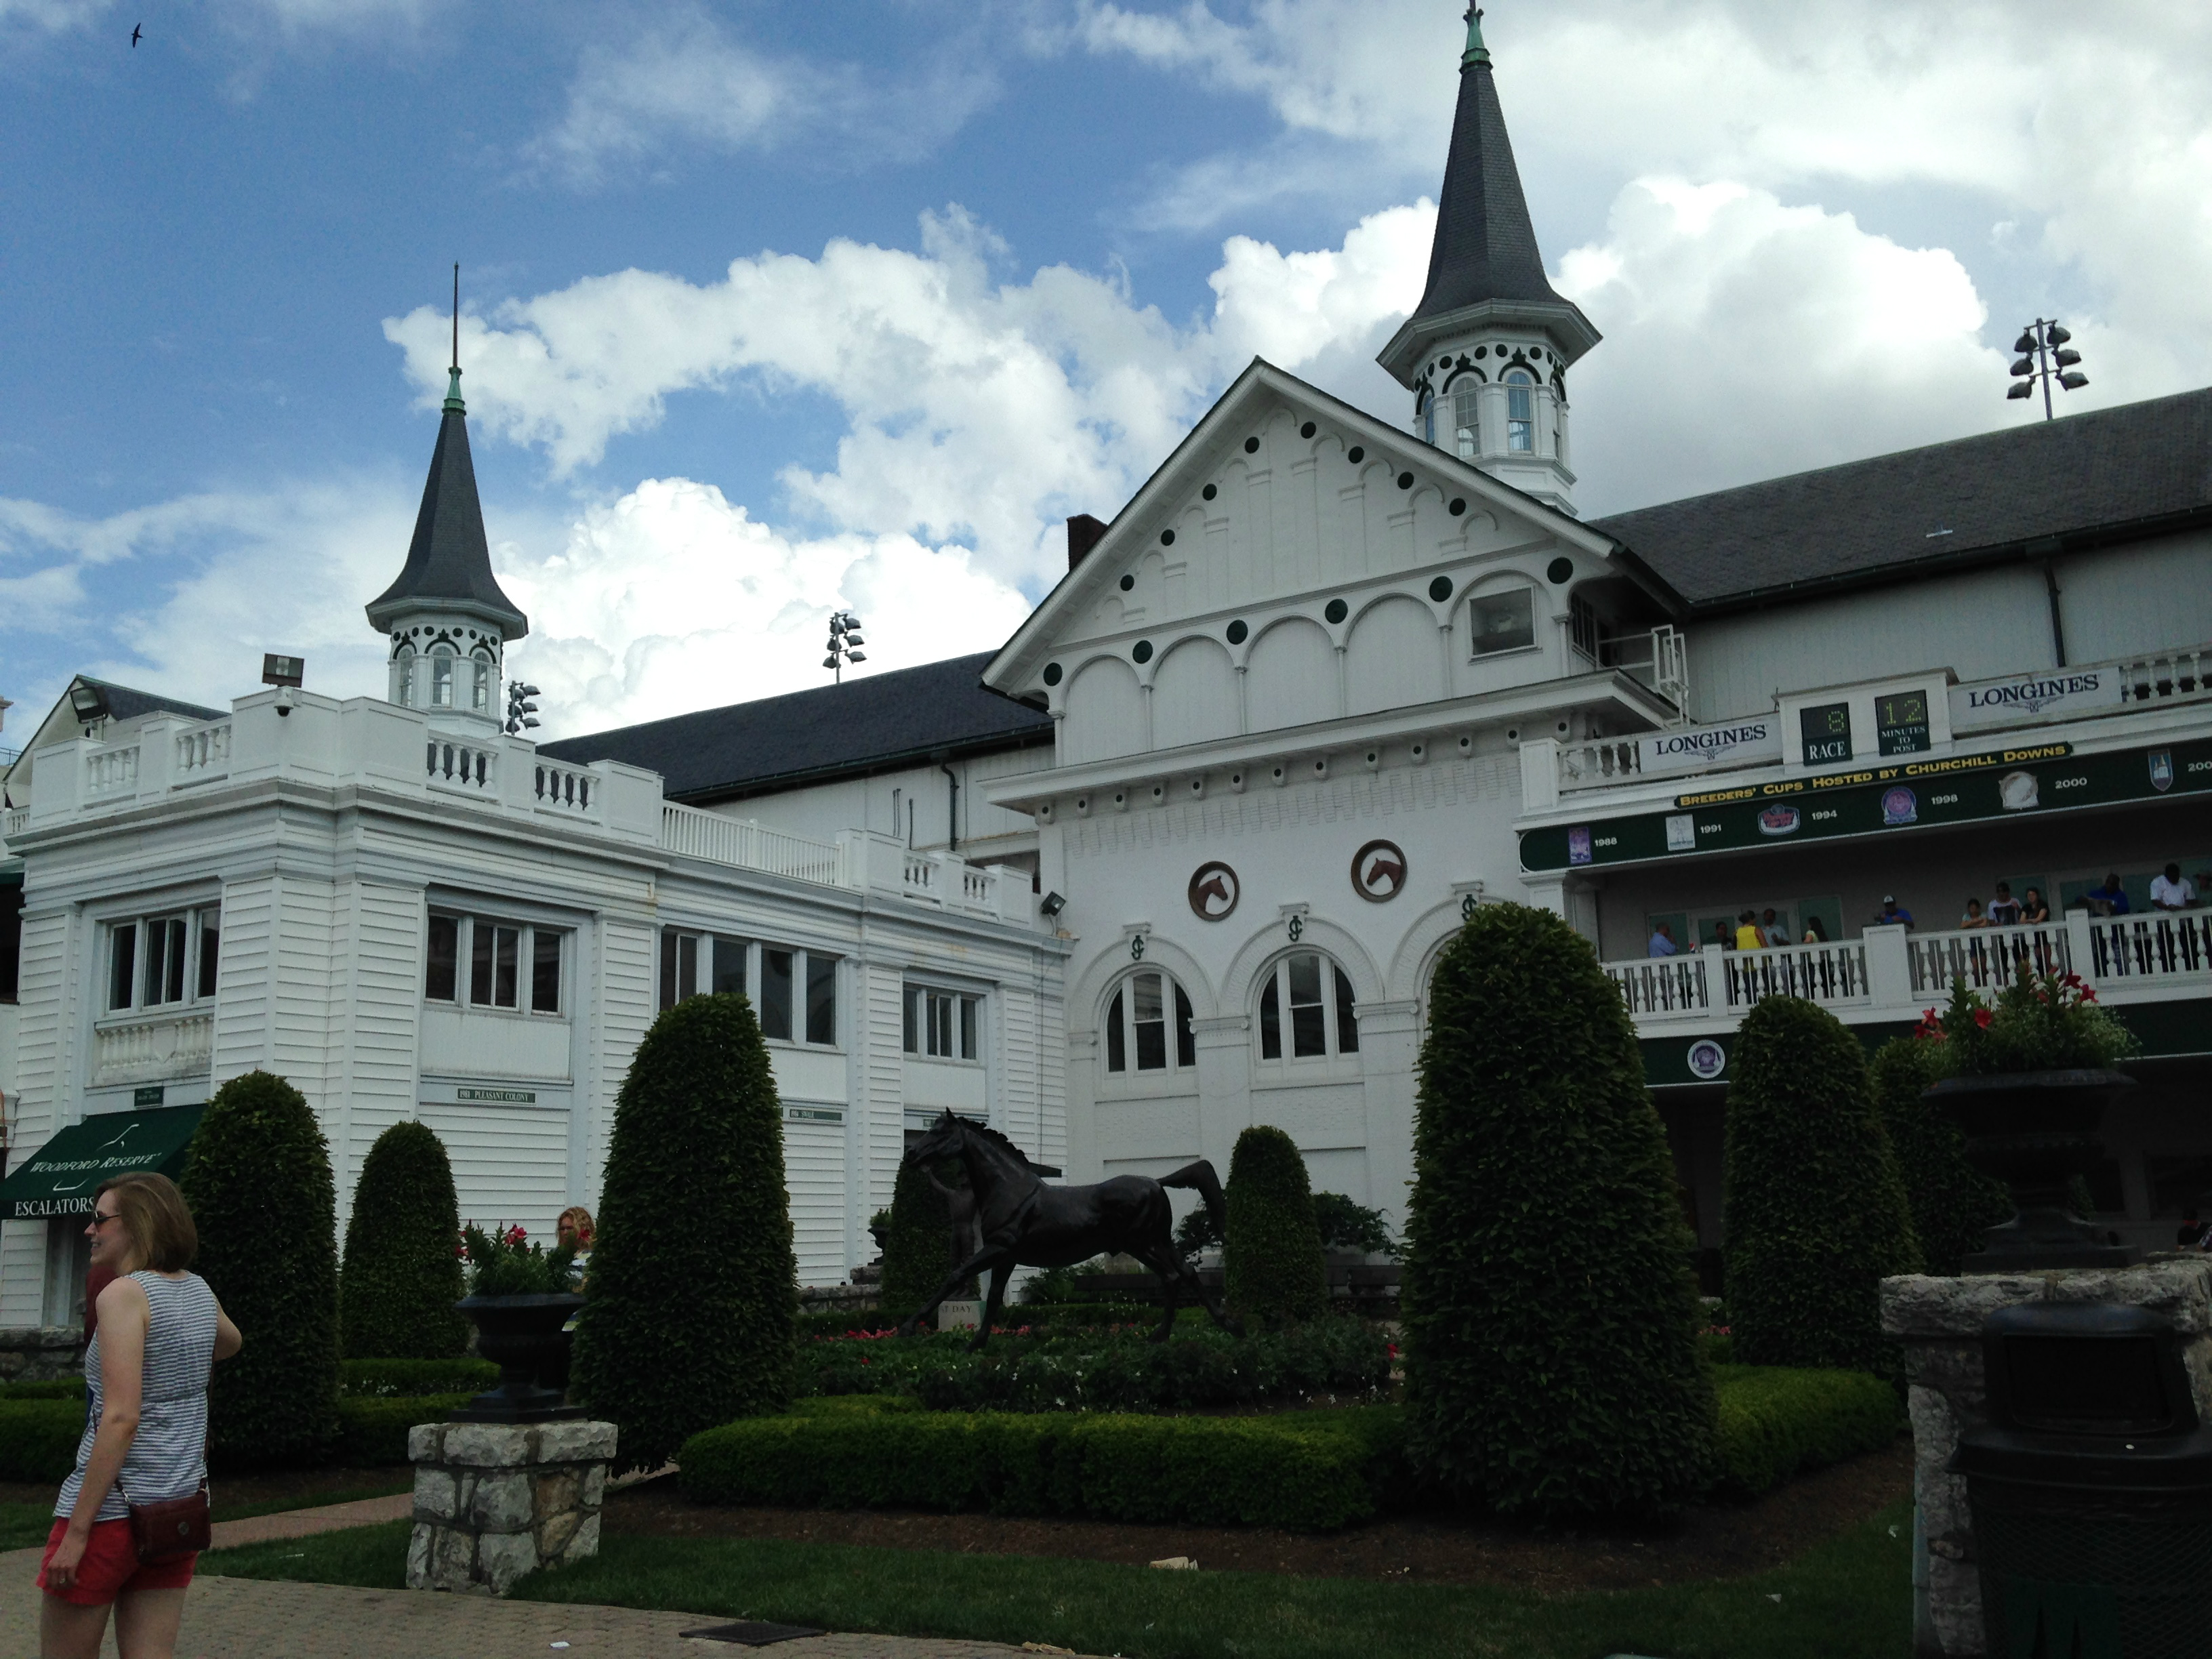 Churchill Downs in Louisville, Kentucky. May 30, 2015.